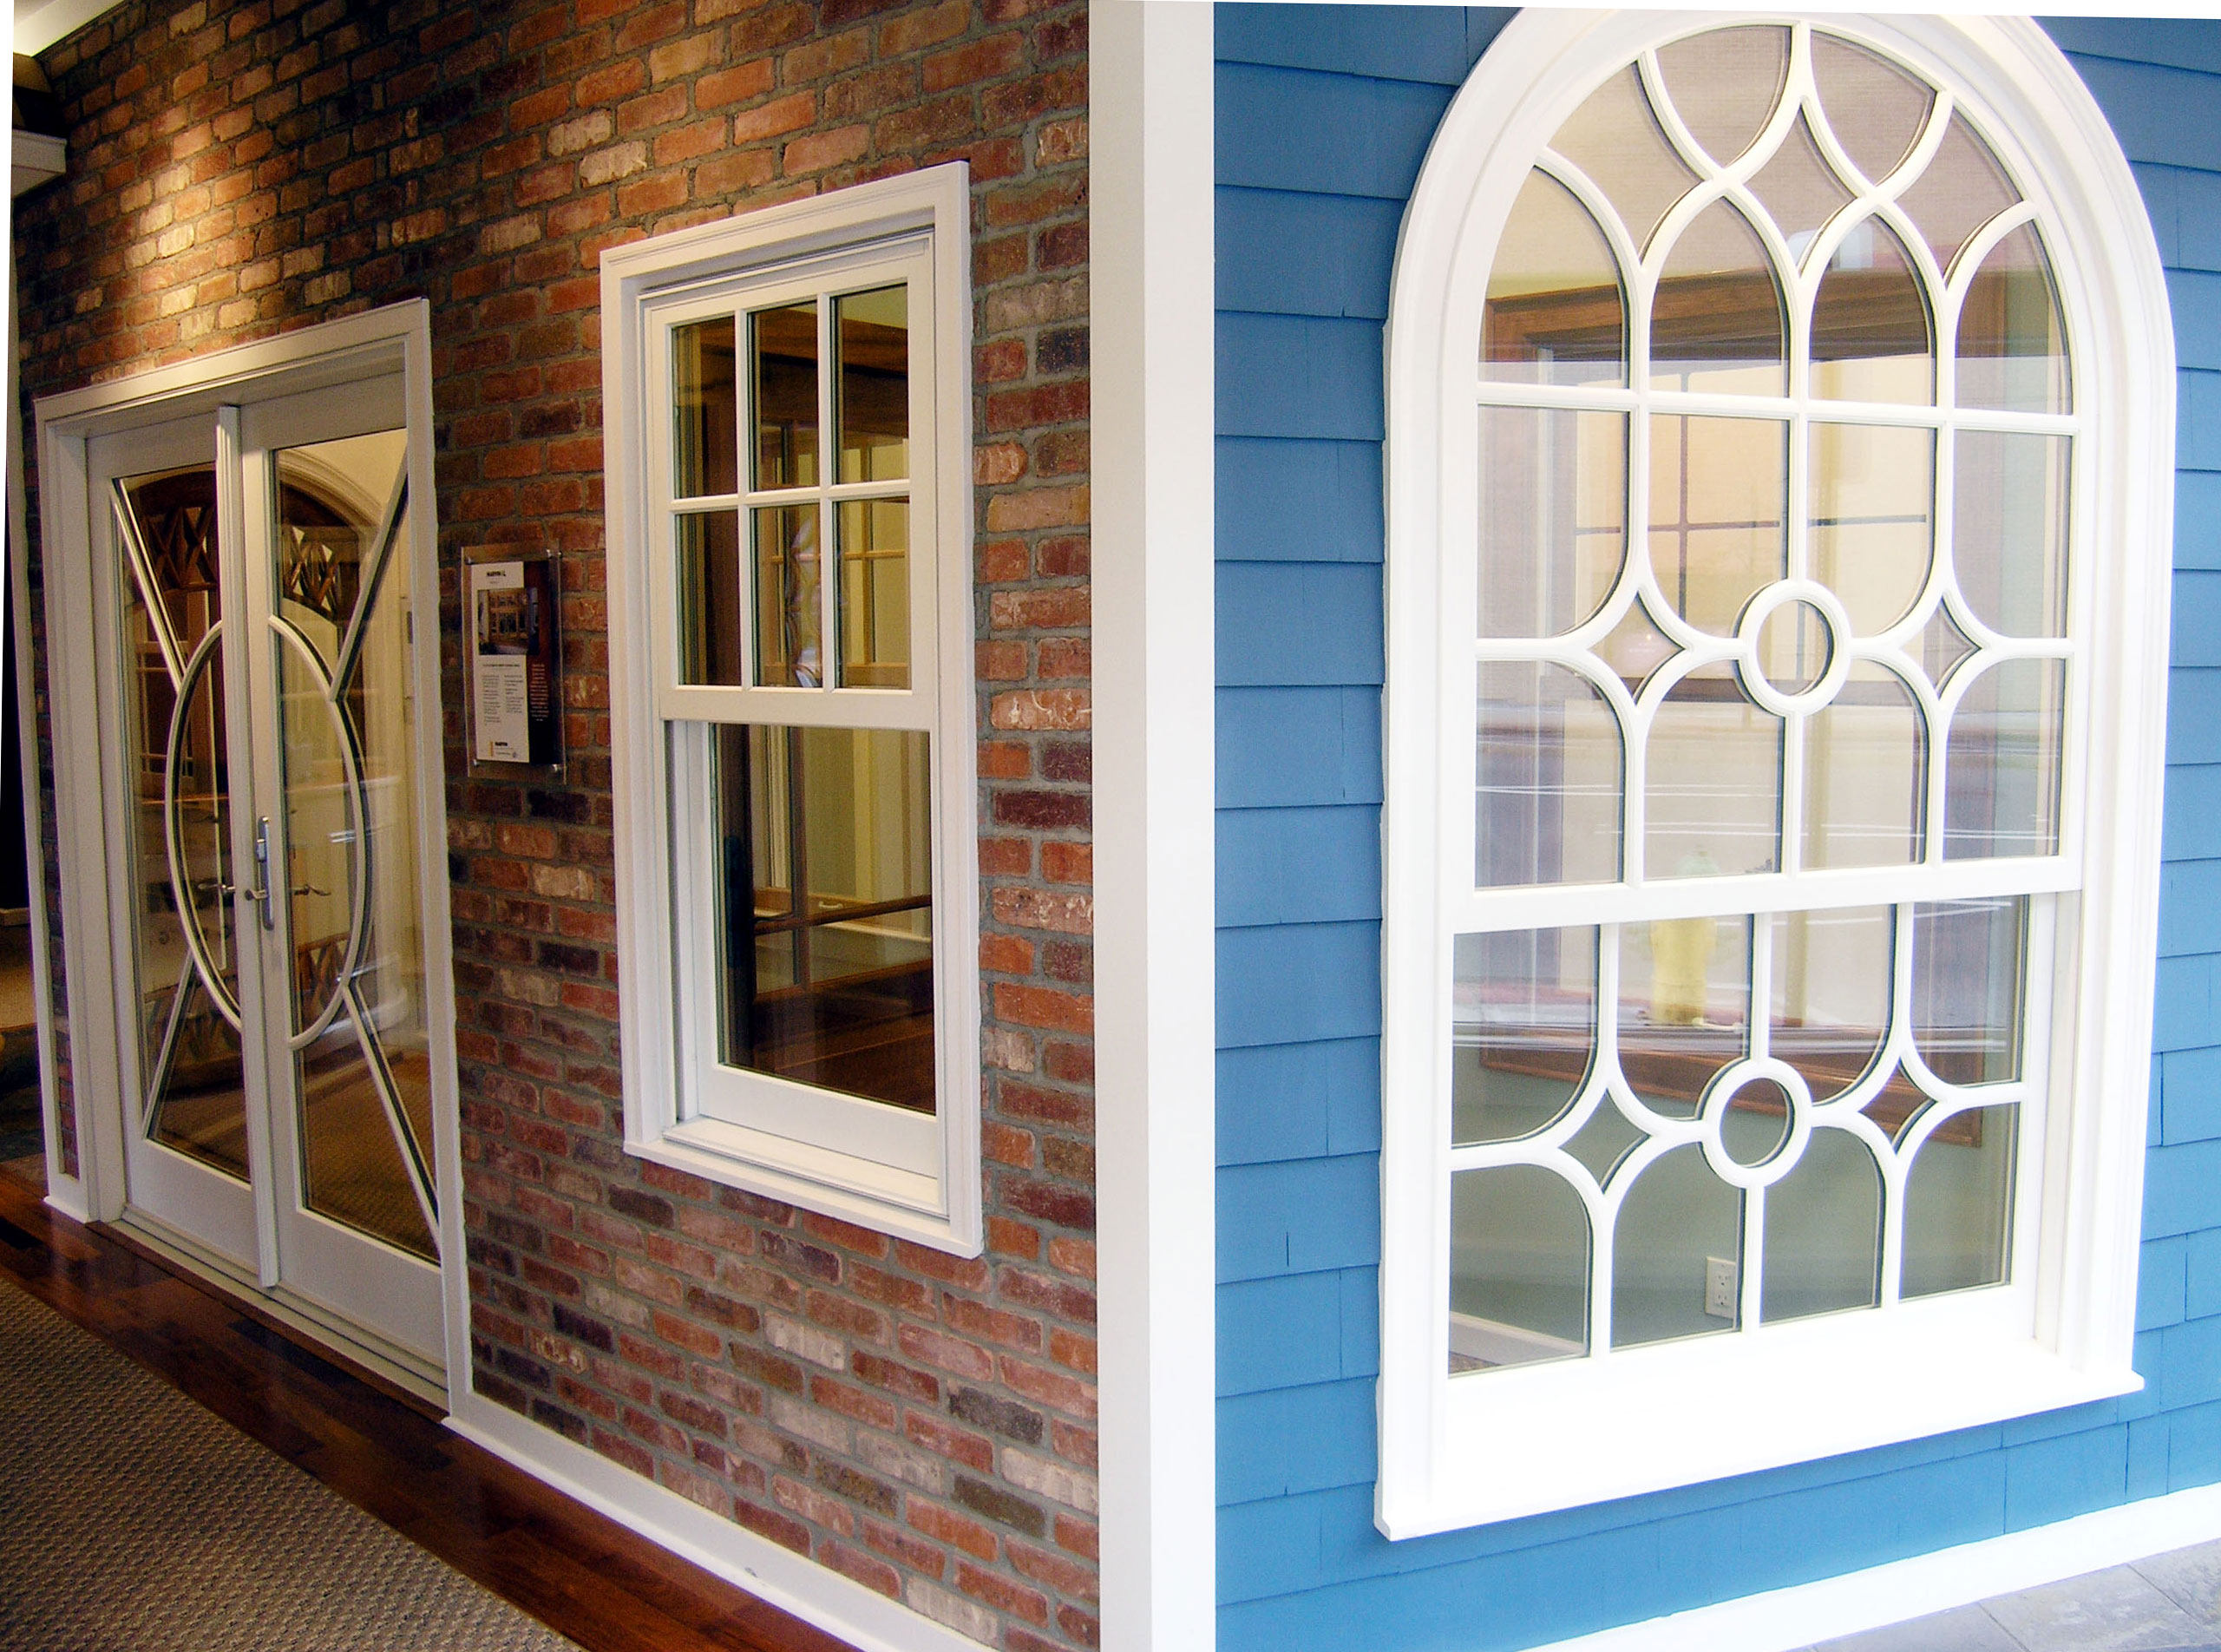 About us elmsford ny authentic window design - Window design for home ...